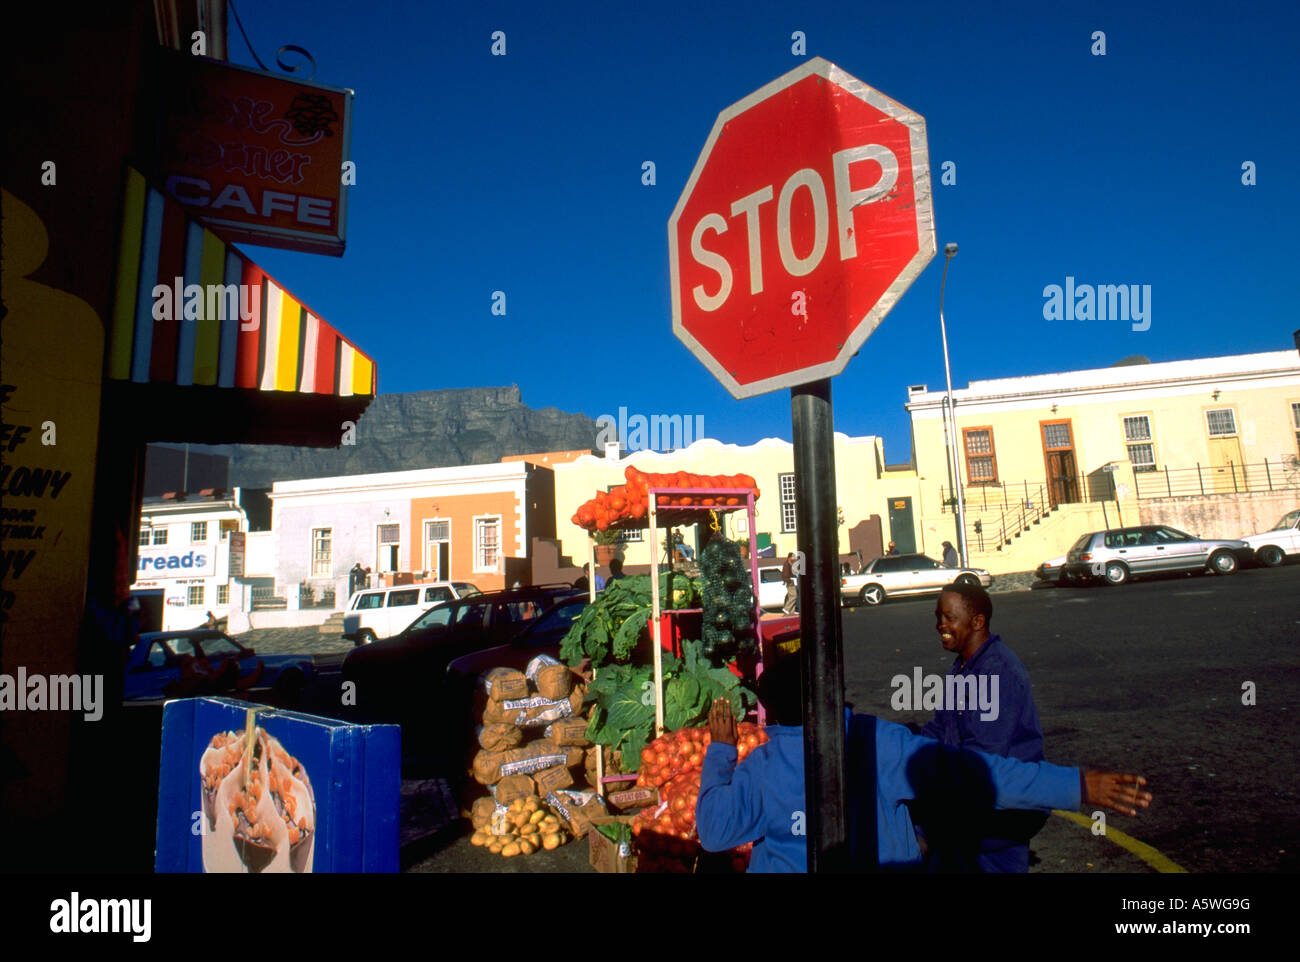 Painet hk2749 south africans relaxing by stop sign malay quarter capetown relax neighborhood fruitstand community Stock Photo